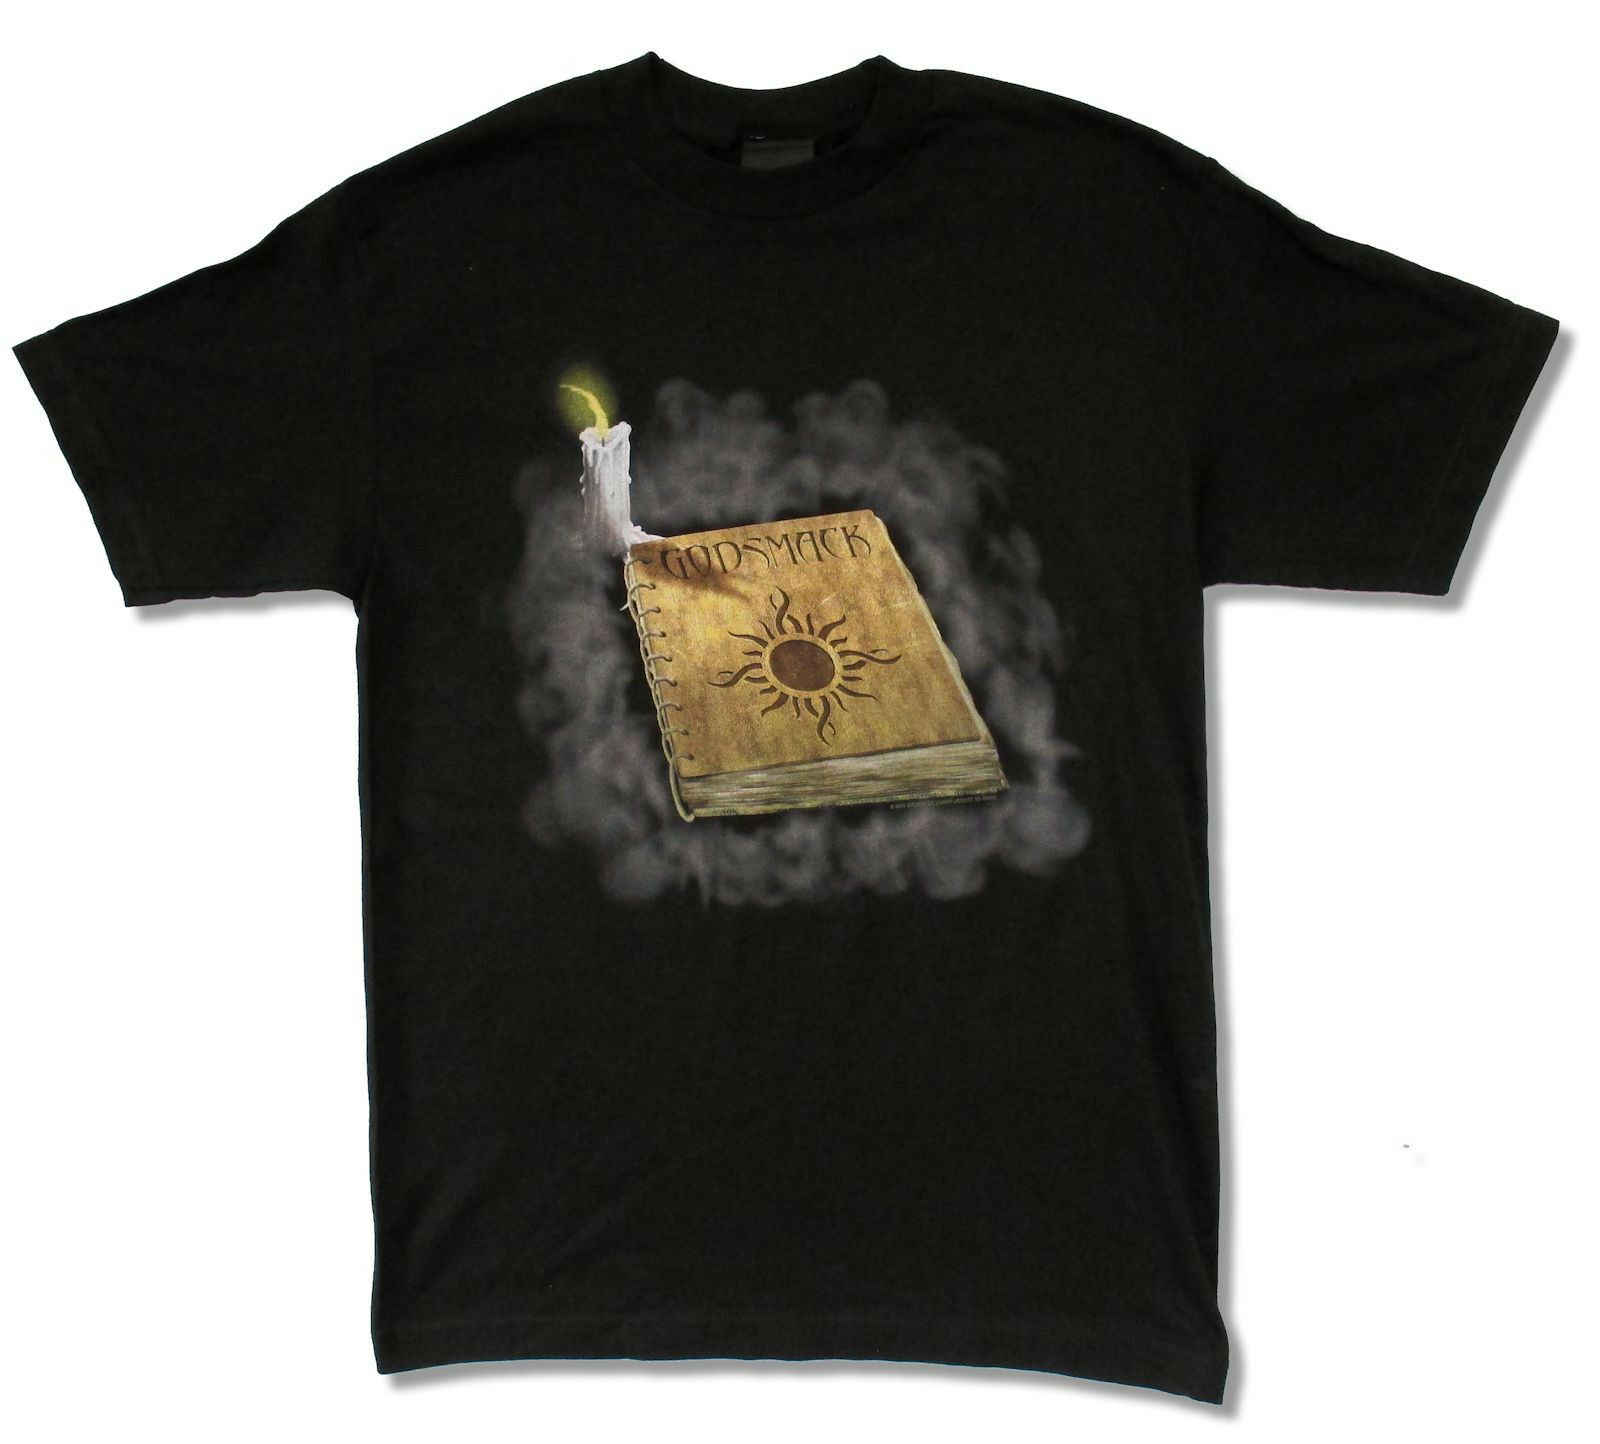 "GODSMACK ""BOOK OF SHADOWS"" BLACK T-SHIRT NEW 2000 OFFICIAL ADULT BAND"